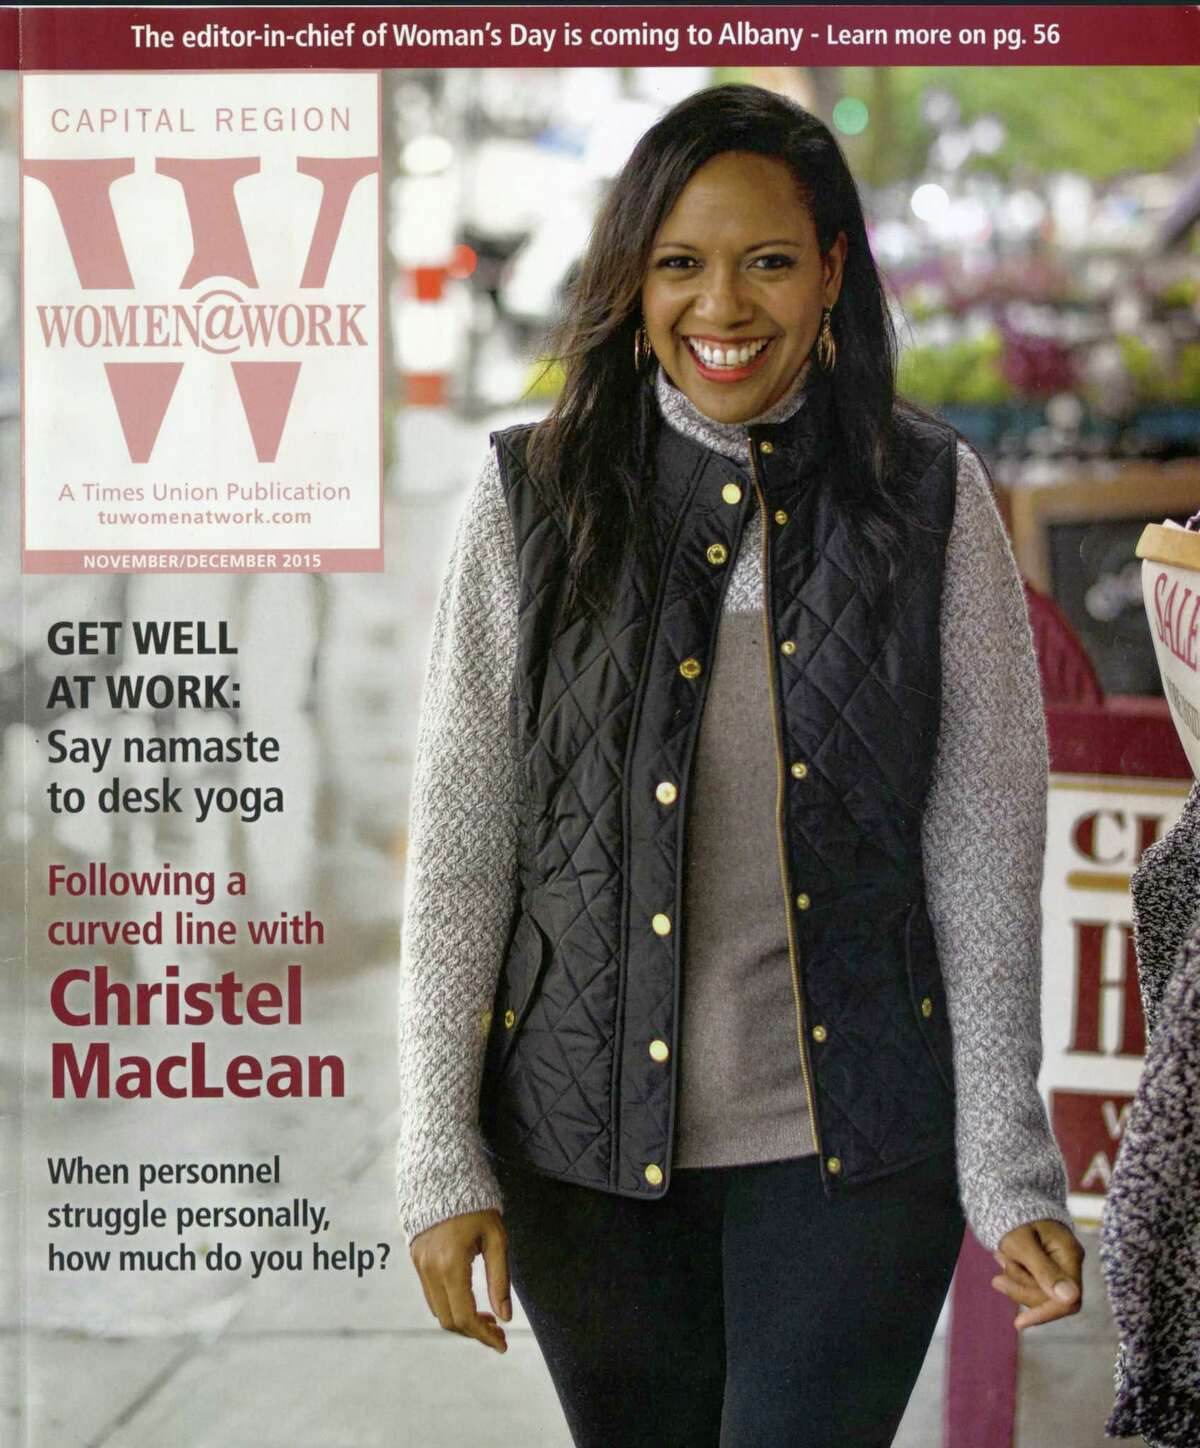 Christel MacLean on a 2015 cover of Women@Work magazine.